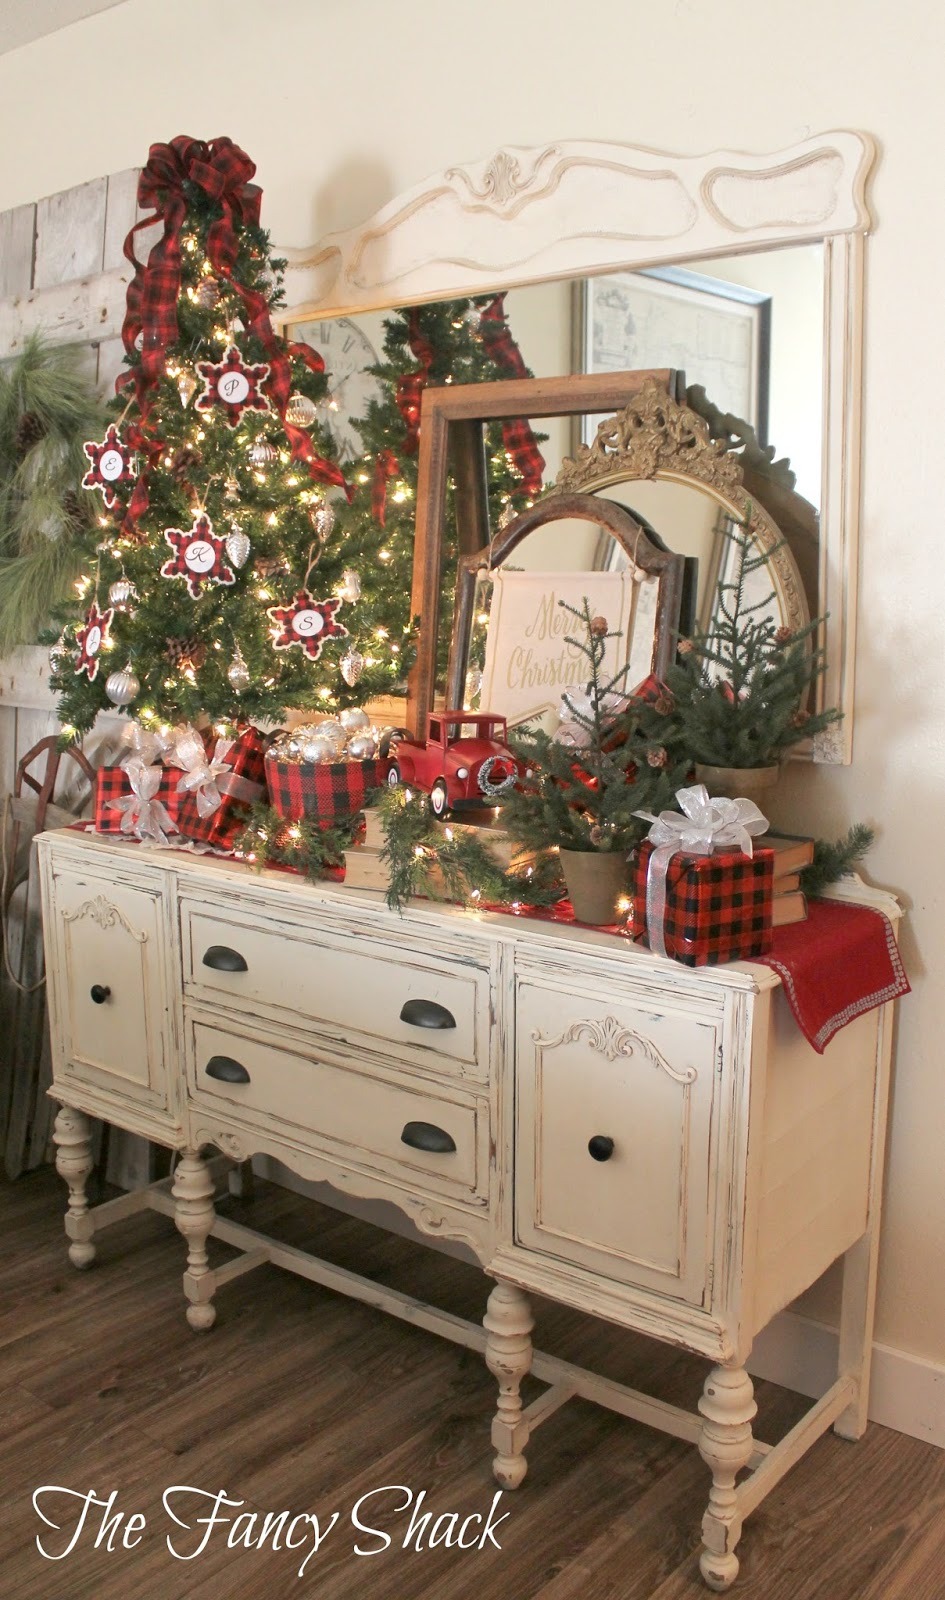 50 best indoor decoration ideas for christmas in 2017 fascinating articles and cool stuff awesome christmas